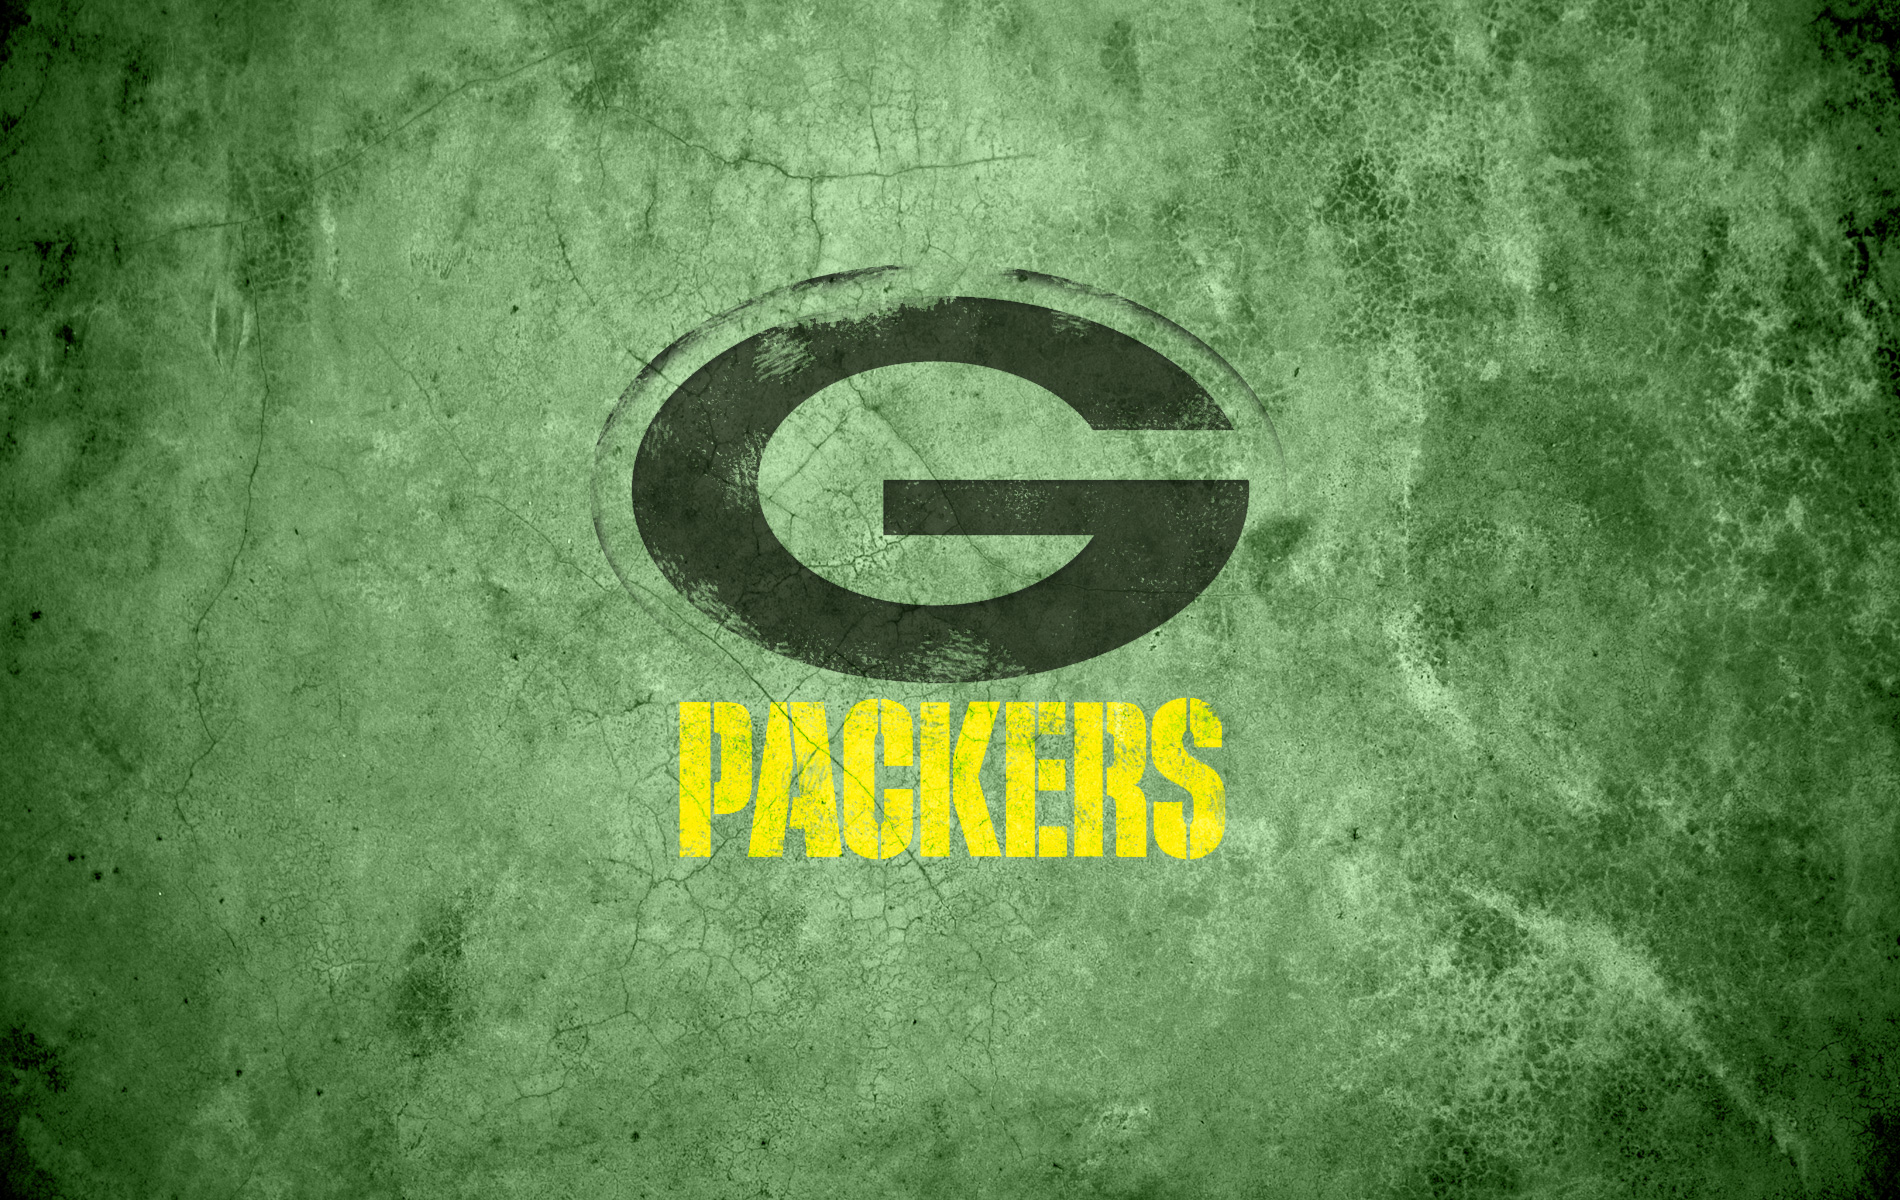 Green Bay Packers images Green Bay Packers Wallpaper HD 1900x1200